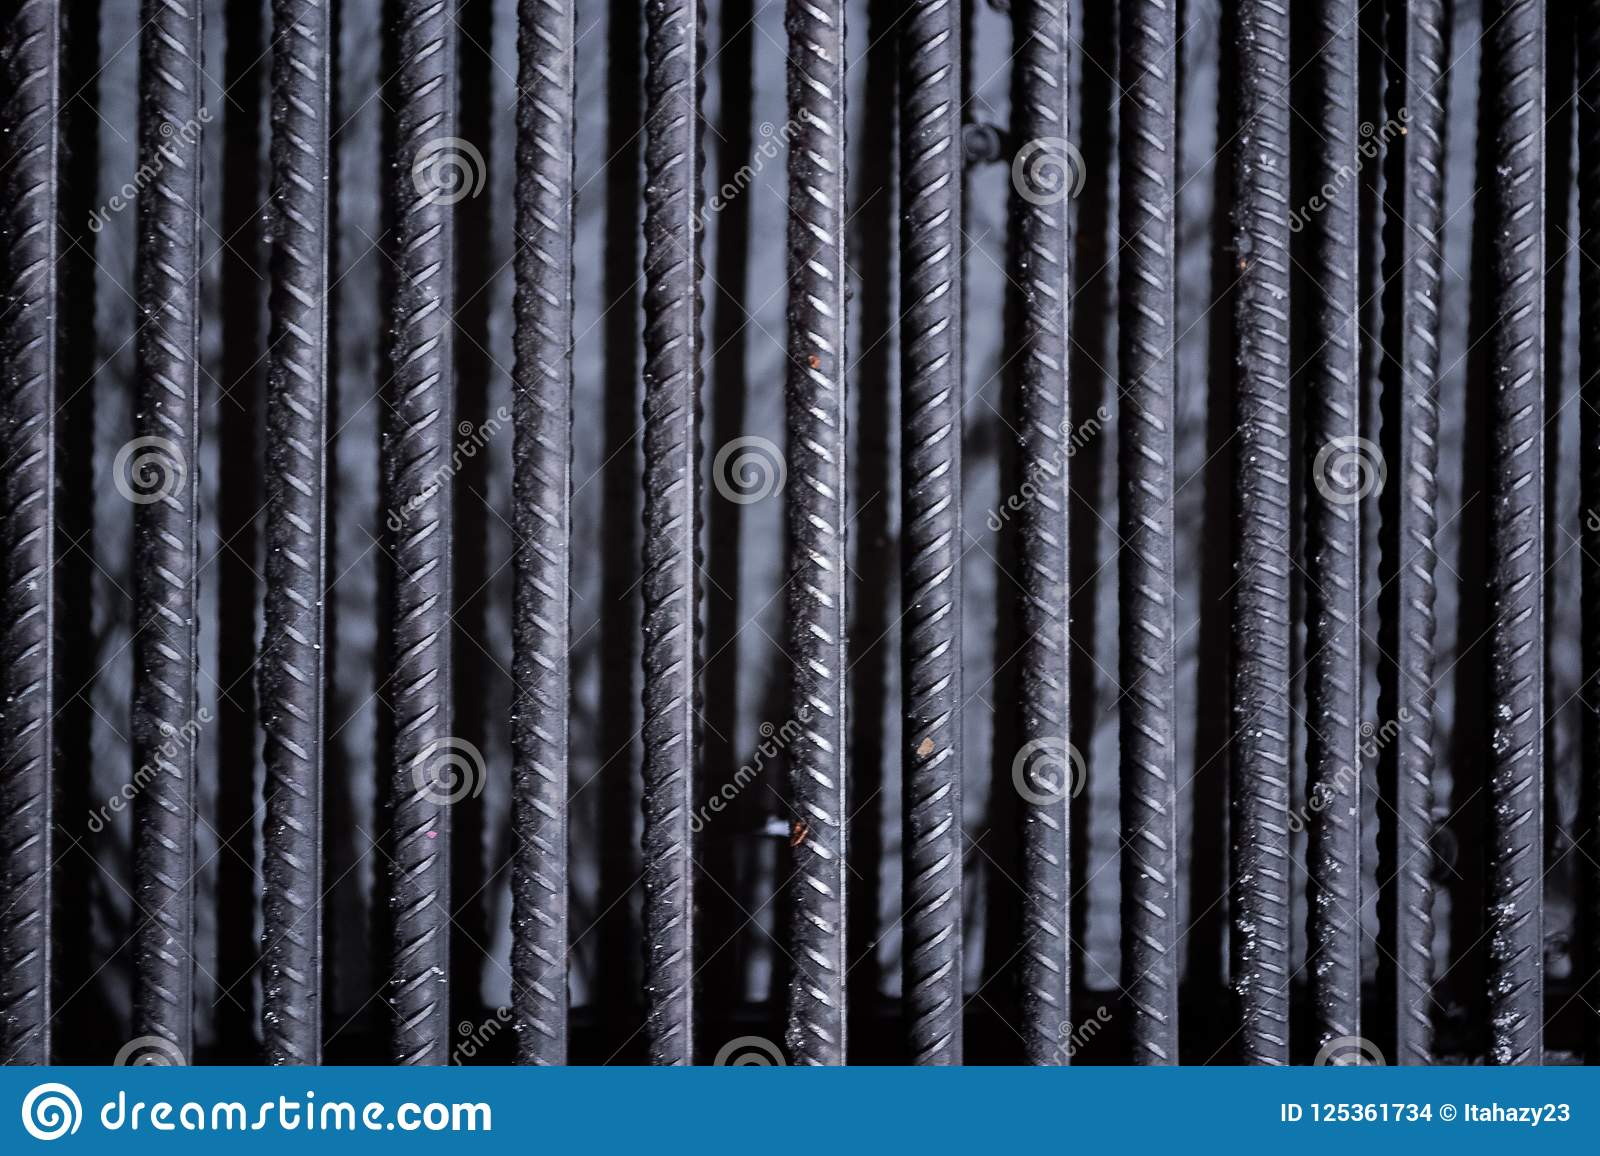 The texture of the iron bars